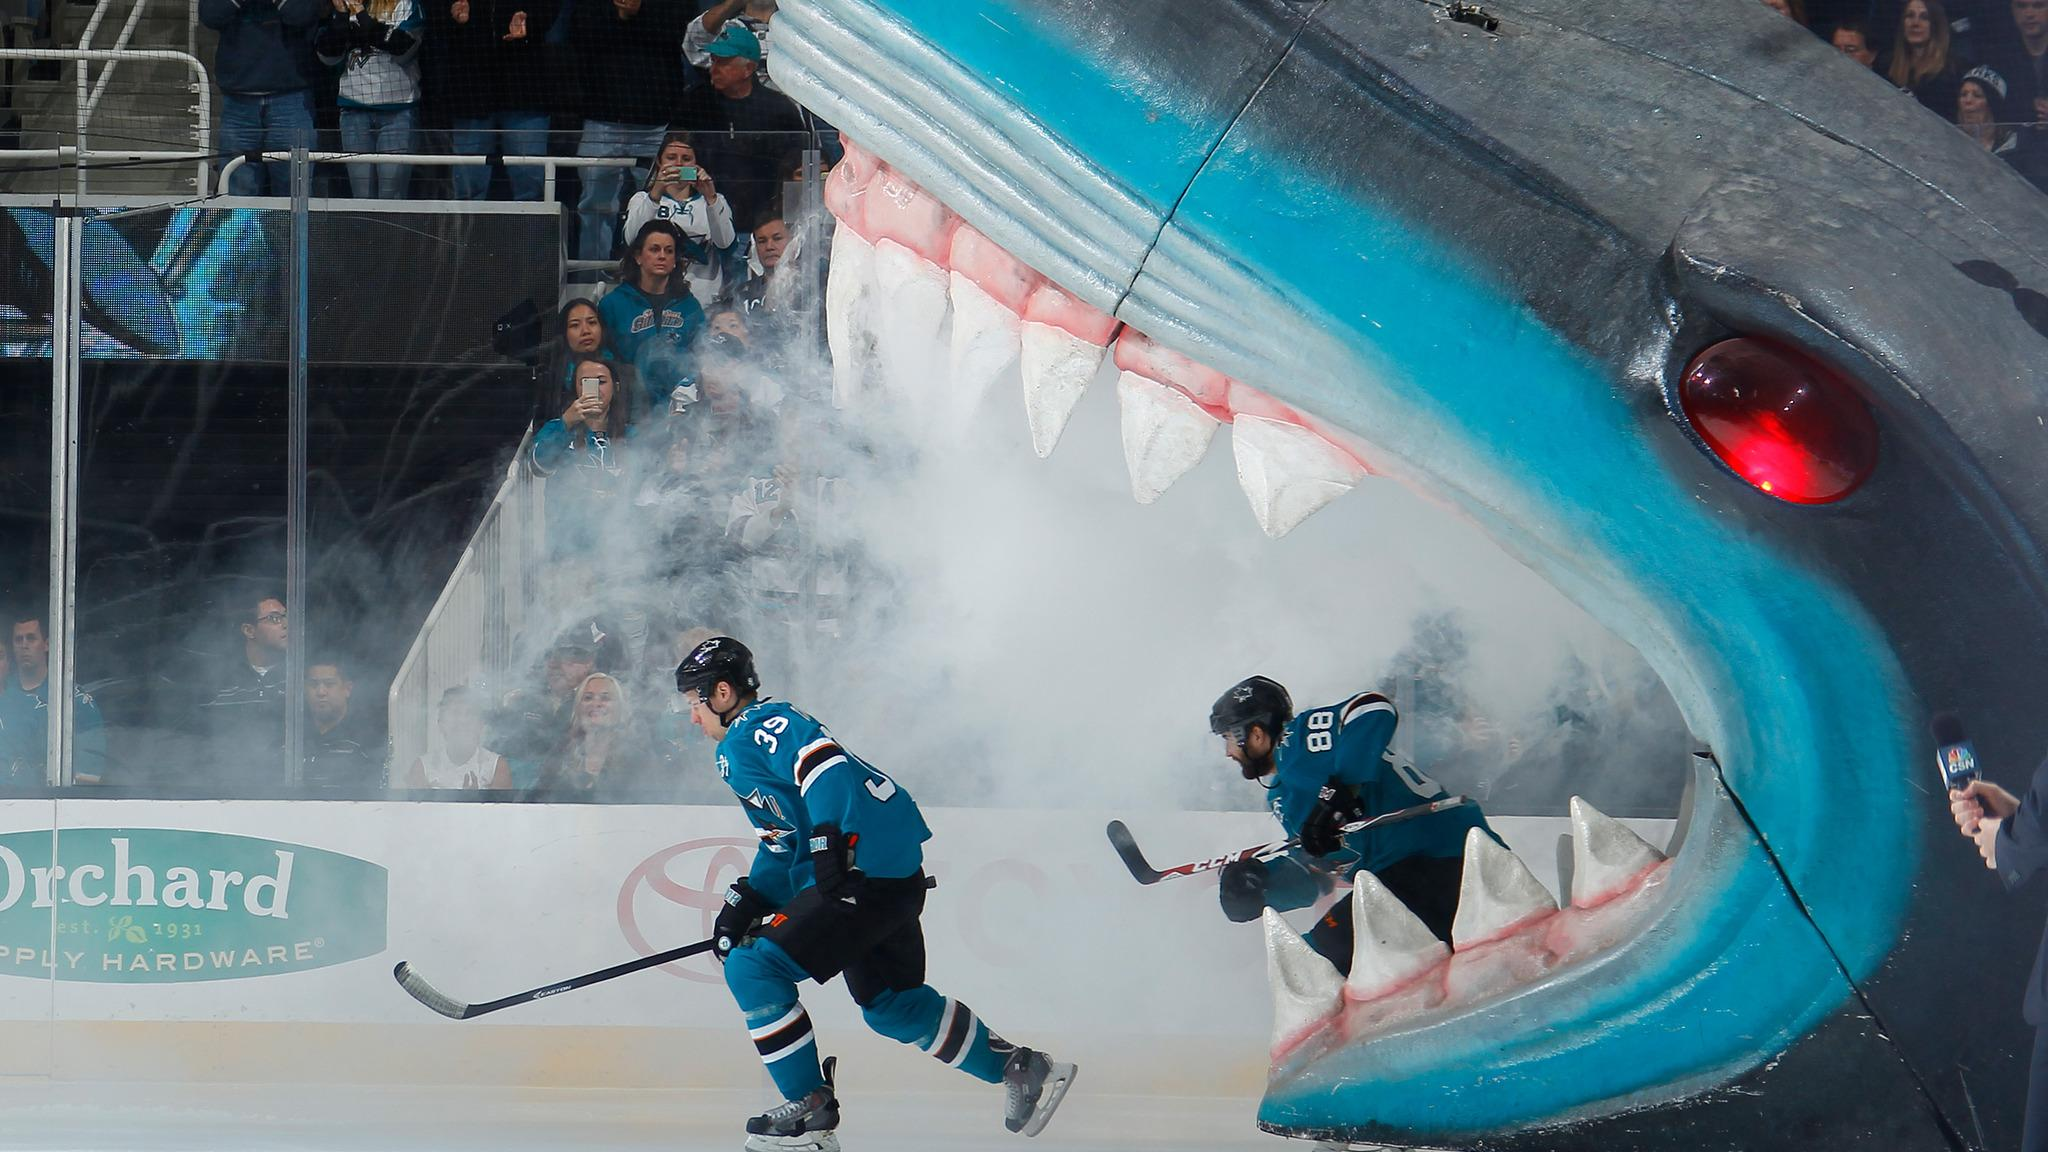 San Jose Sharks vs. Los Angeles Kings - San Jose, CA 95113